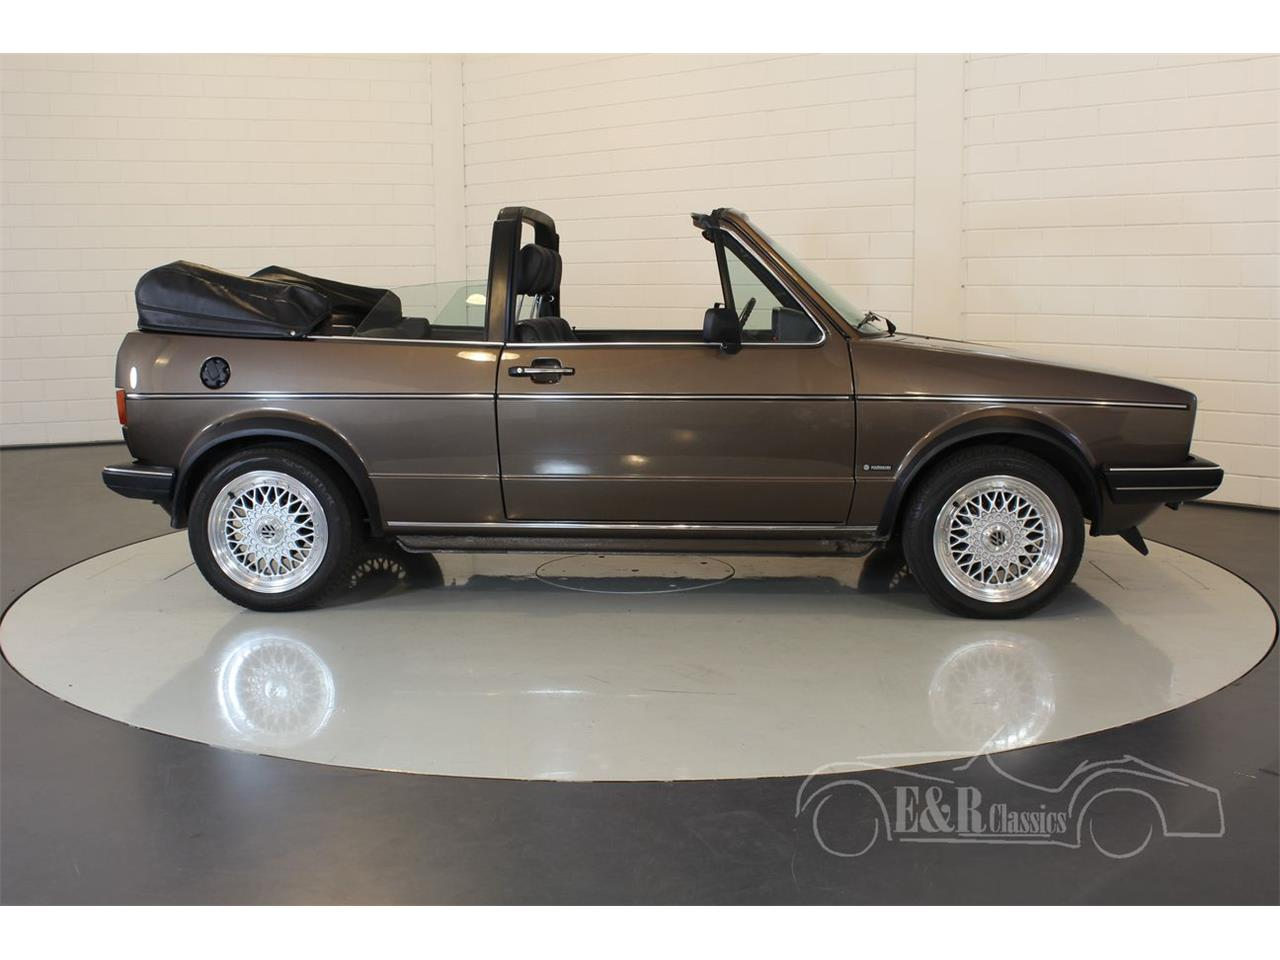 Large Picture of '84 Golf - $19,100.00 Offered by E & R Classics - PH4B